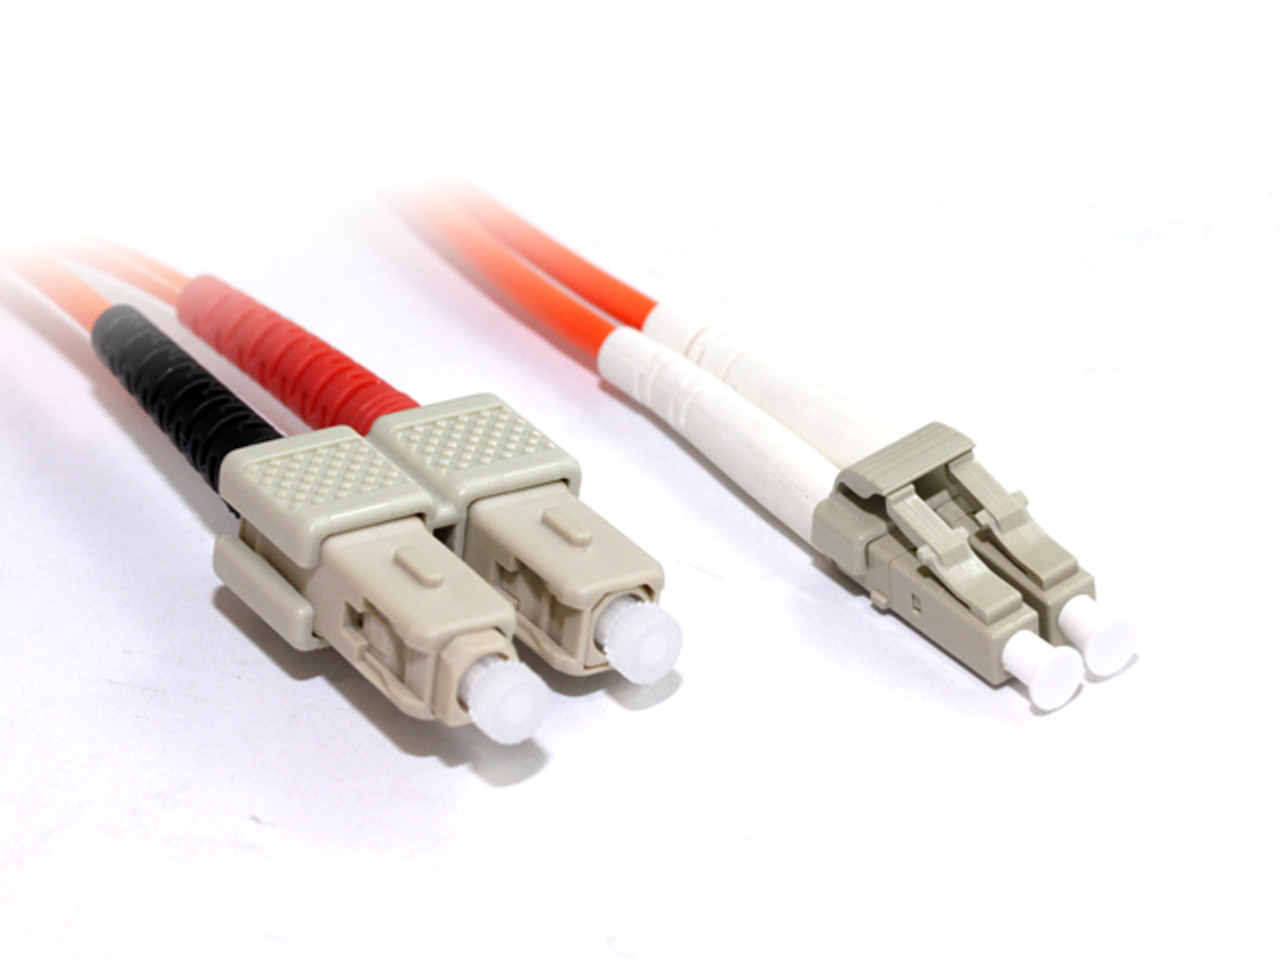 Product image for 10M LC-SC OM2 50/125 Multimode Duplex Fibre Optic Cable | CX Computer Superstore